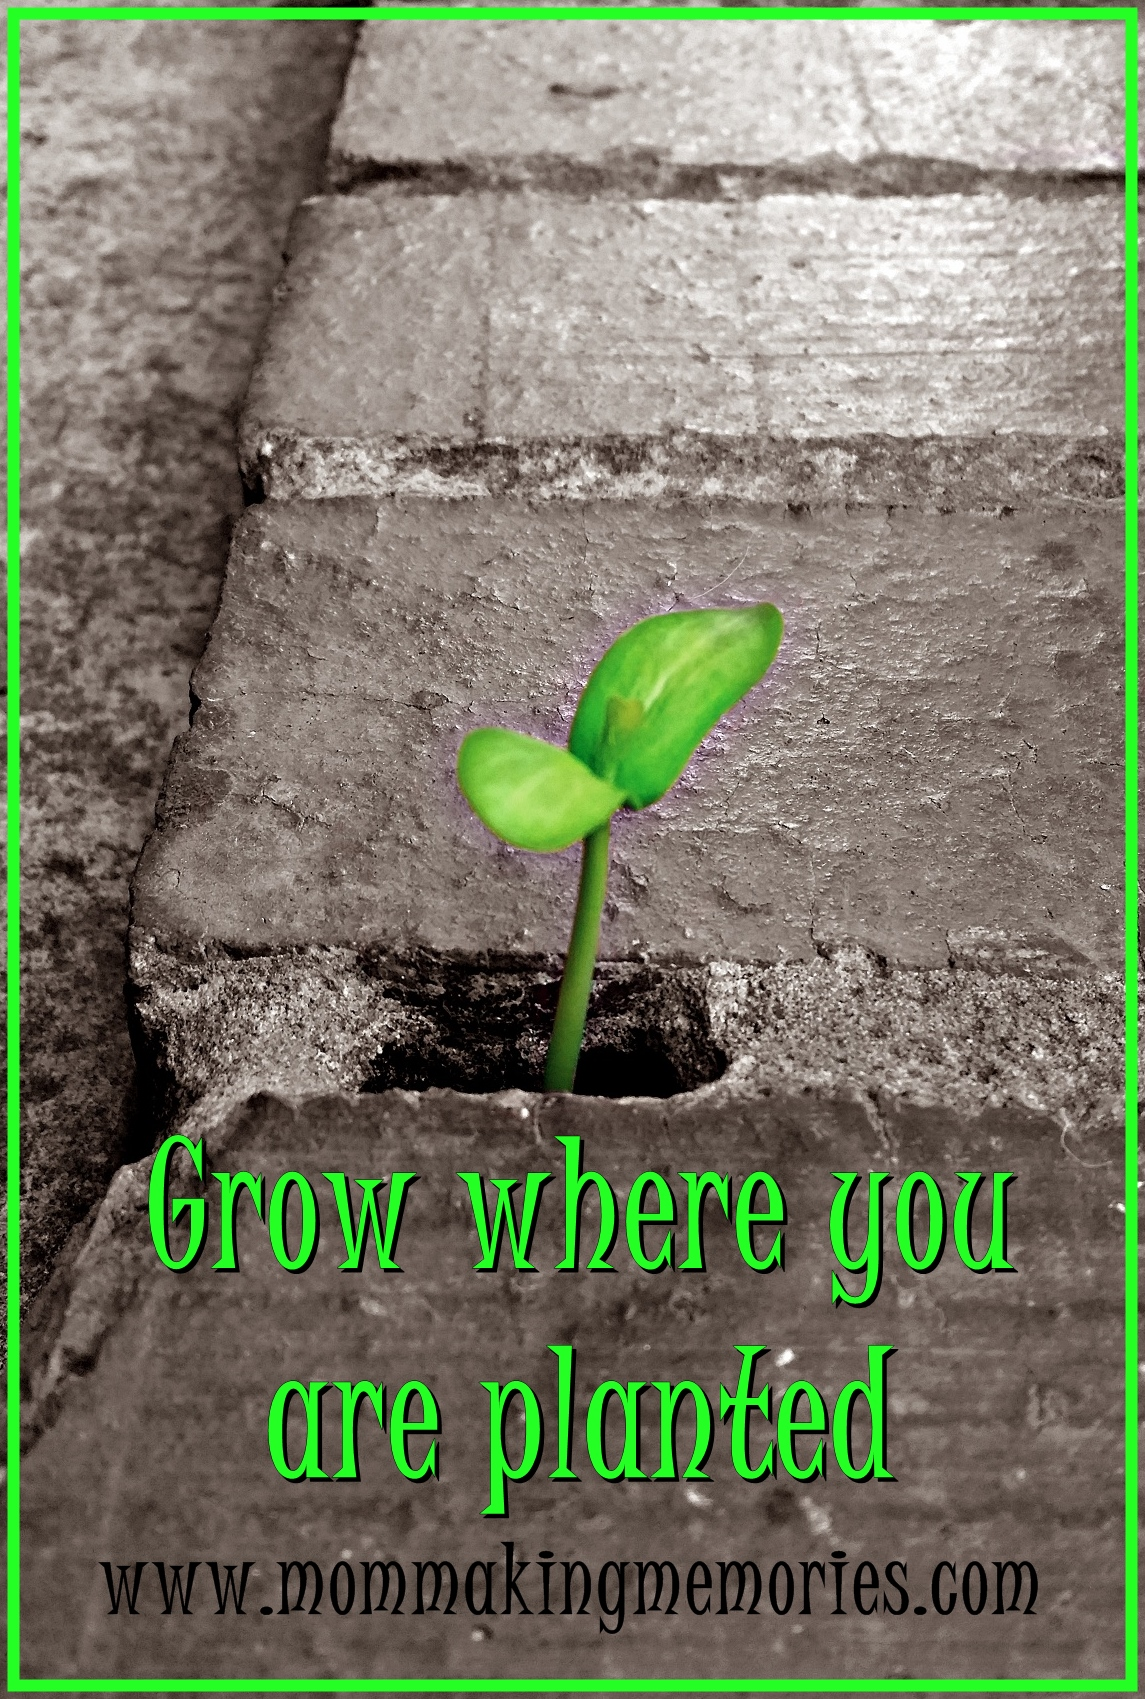 Grow where you are planted. www.mommakingmemories.com